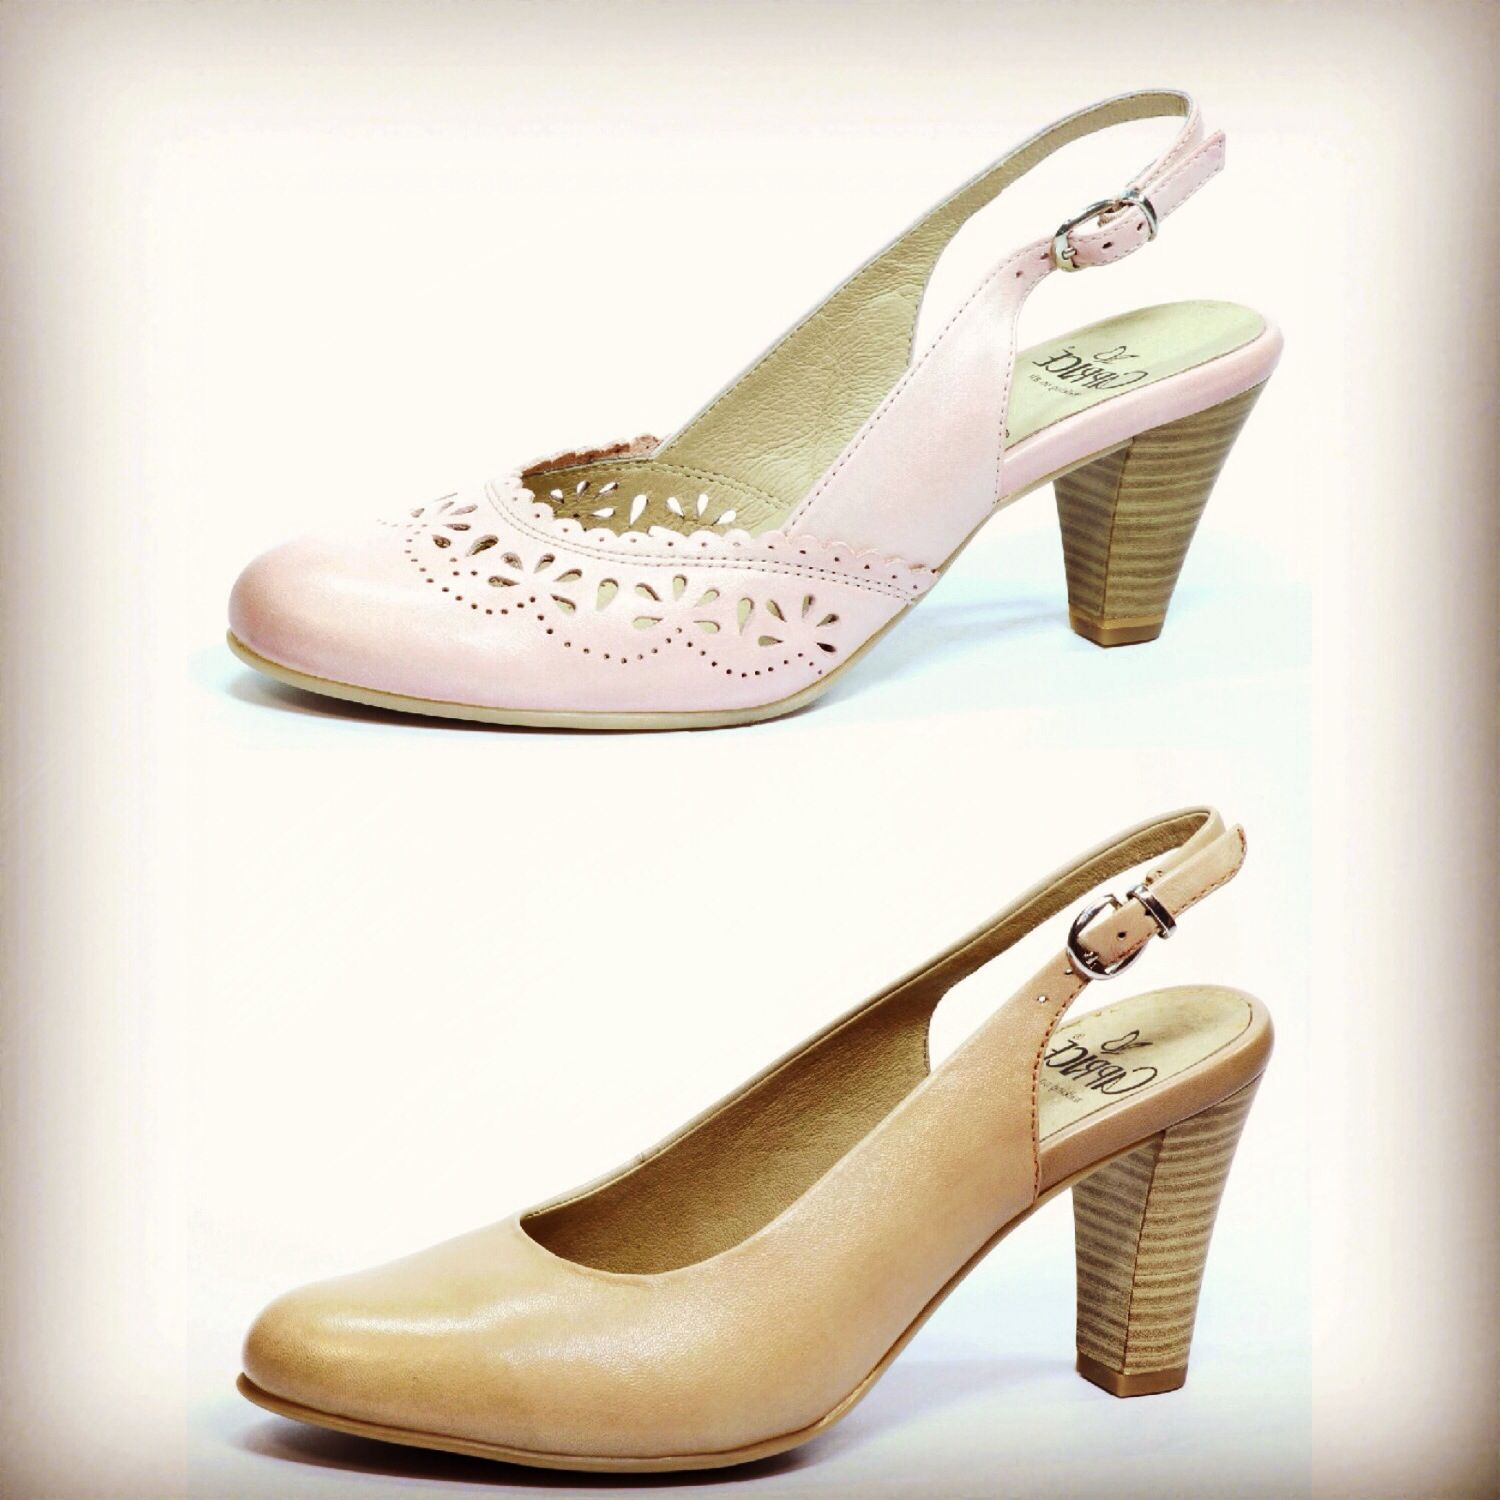 Gorgeous leather sling backs for this summer, all super soft leather! More of the collection on www.fb.com/CapriceFootwear or email capricepr@gmail.com for more info #summer #fashion #heels #pumps #sandals #capriceshoes